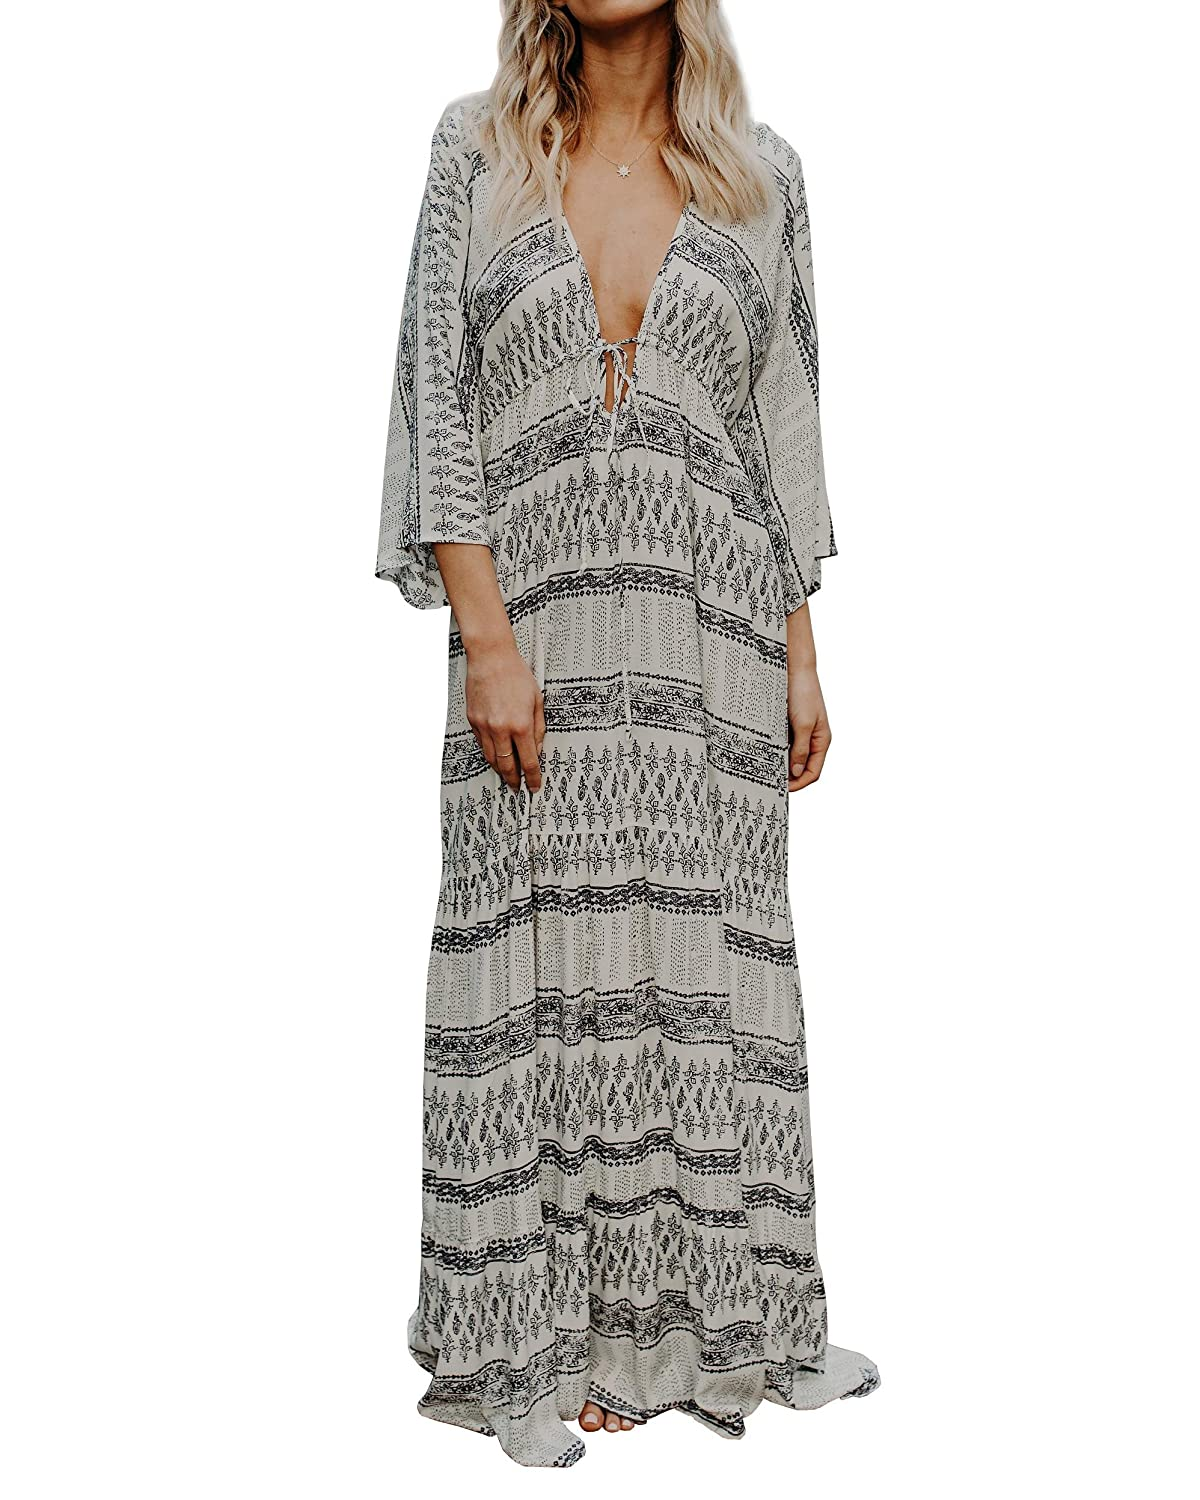 b5ba1682e84 Women s Cute Boho Vintage Printed Loose Casual Ethnic StyleTunic Long  Dresses Feature Floral Print